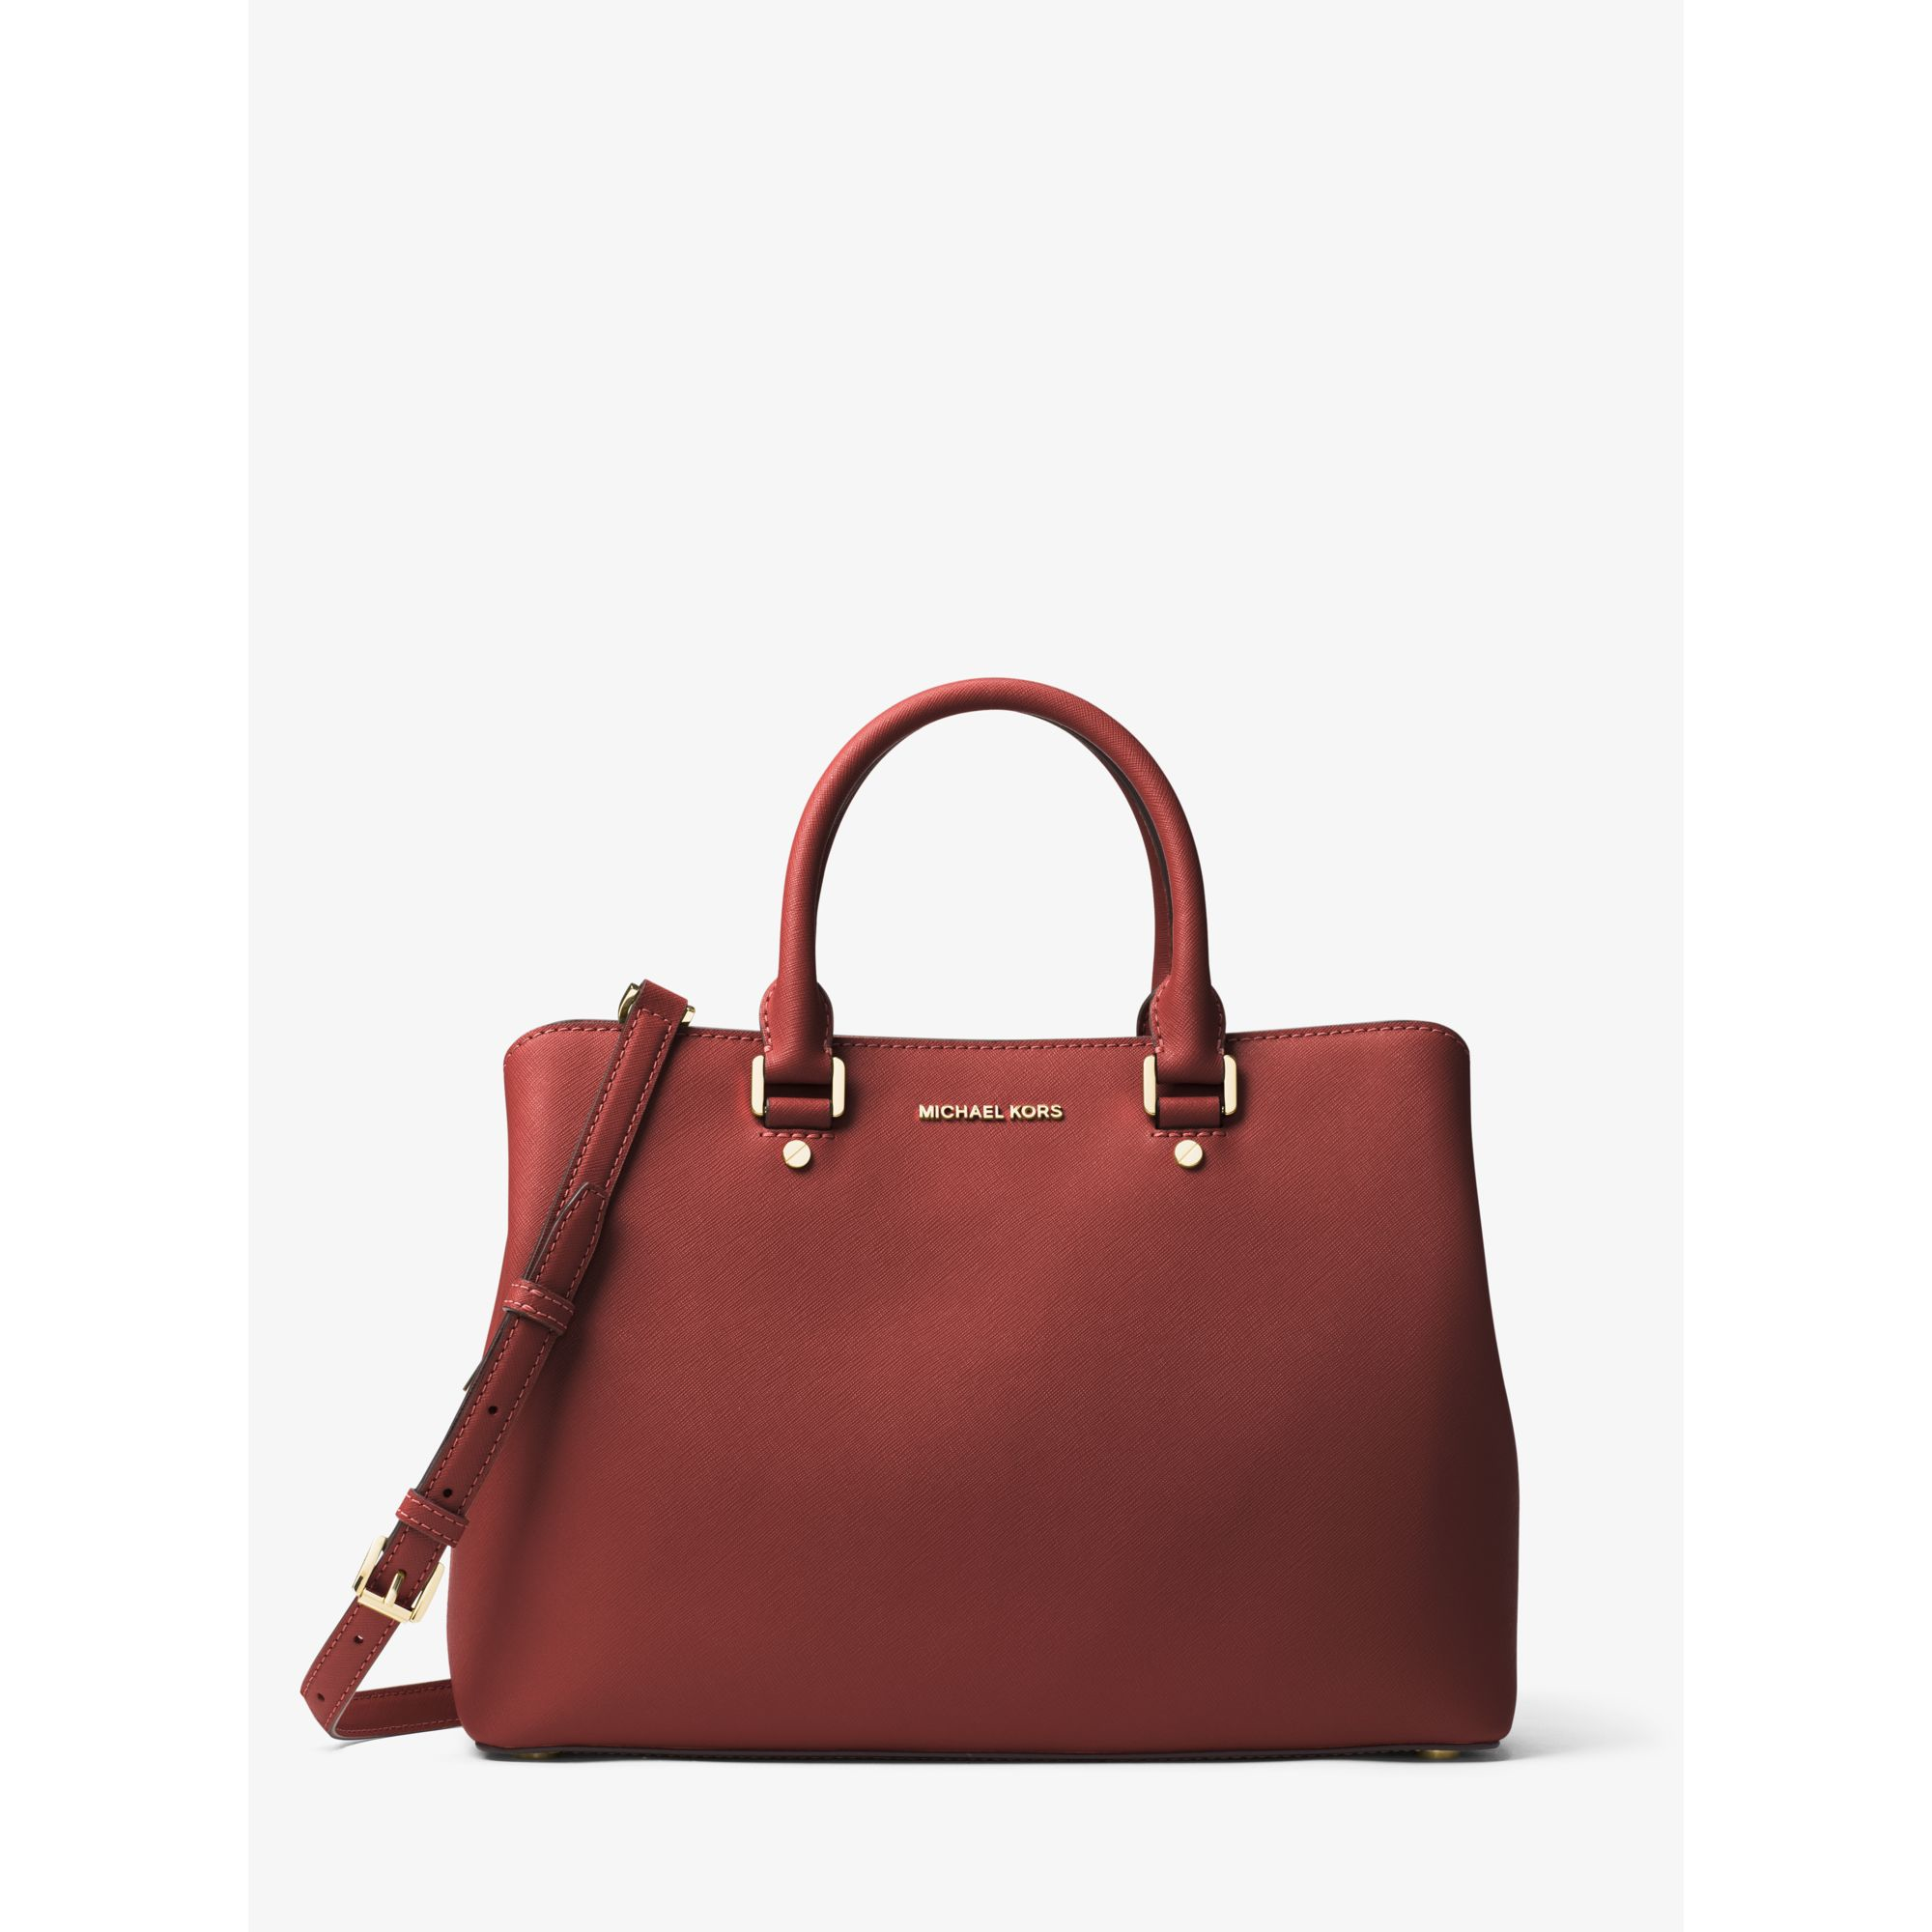 michael kors savannah large saffiano leather satchel in red lyst. Black Bedroom Furniture Sets. Home Design Ideas